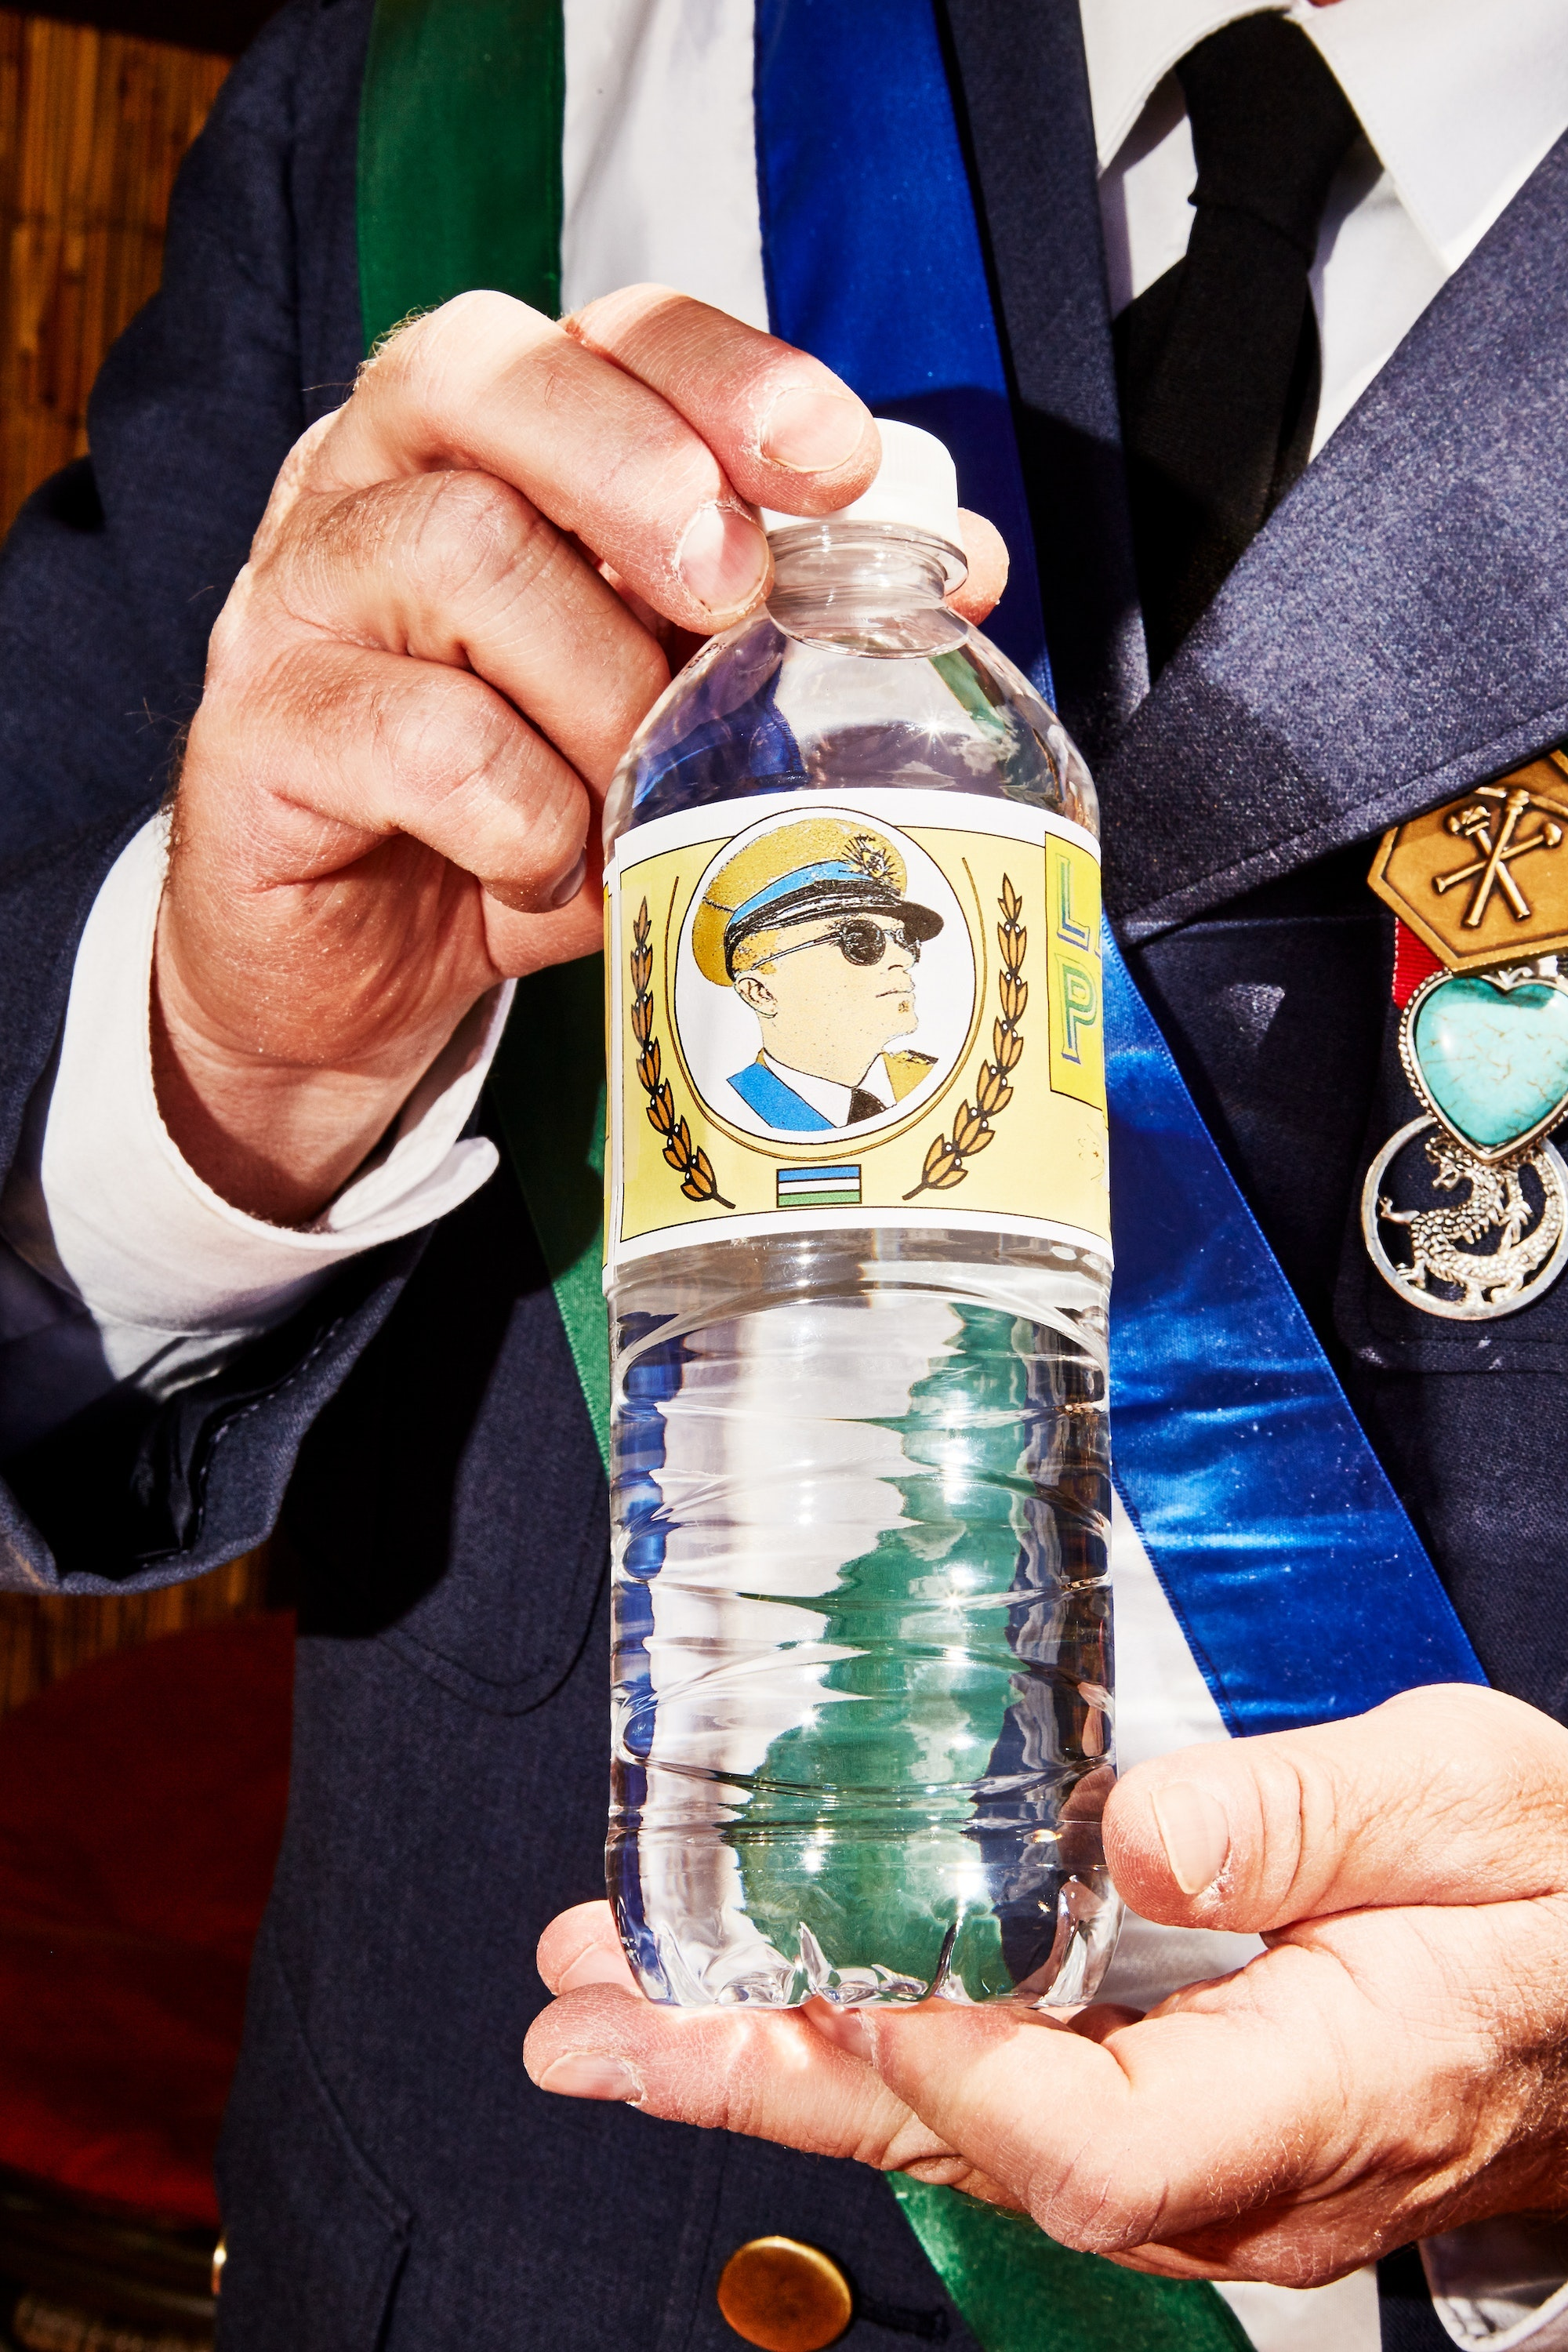 Lombard notes that Molossia is full of funny little details, like signs for free rocks or bottles of water with the President's face on them.